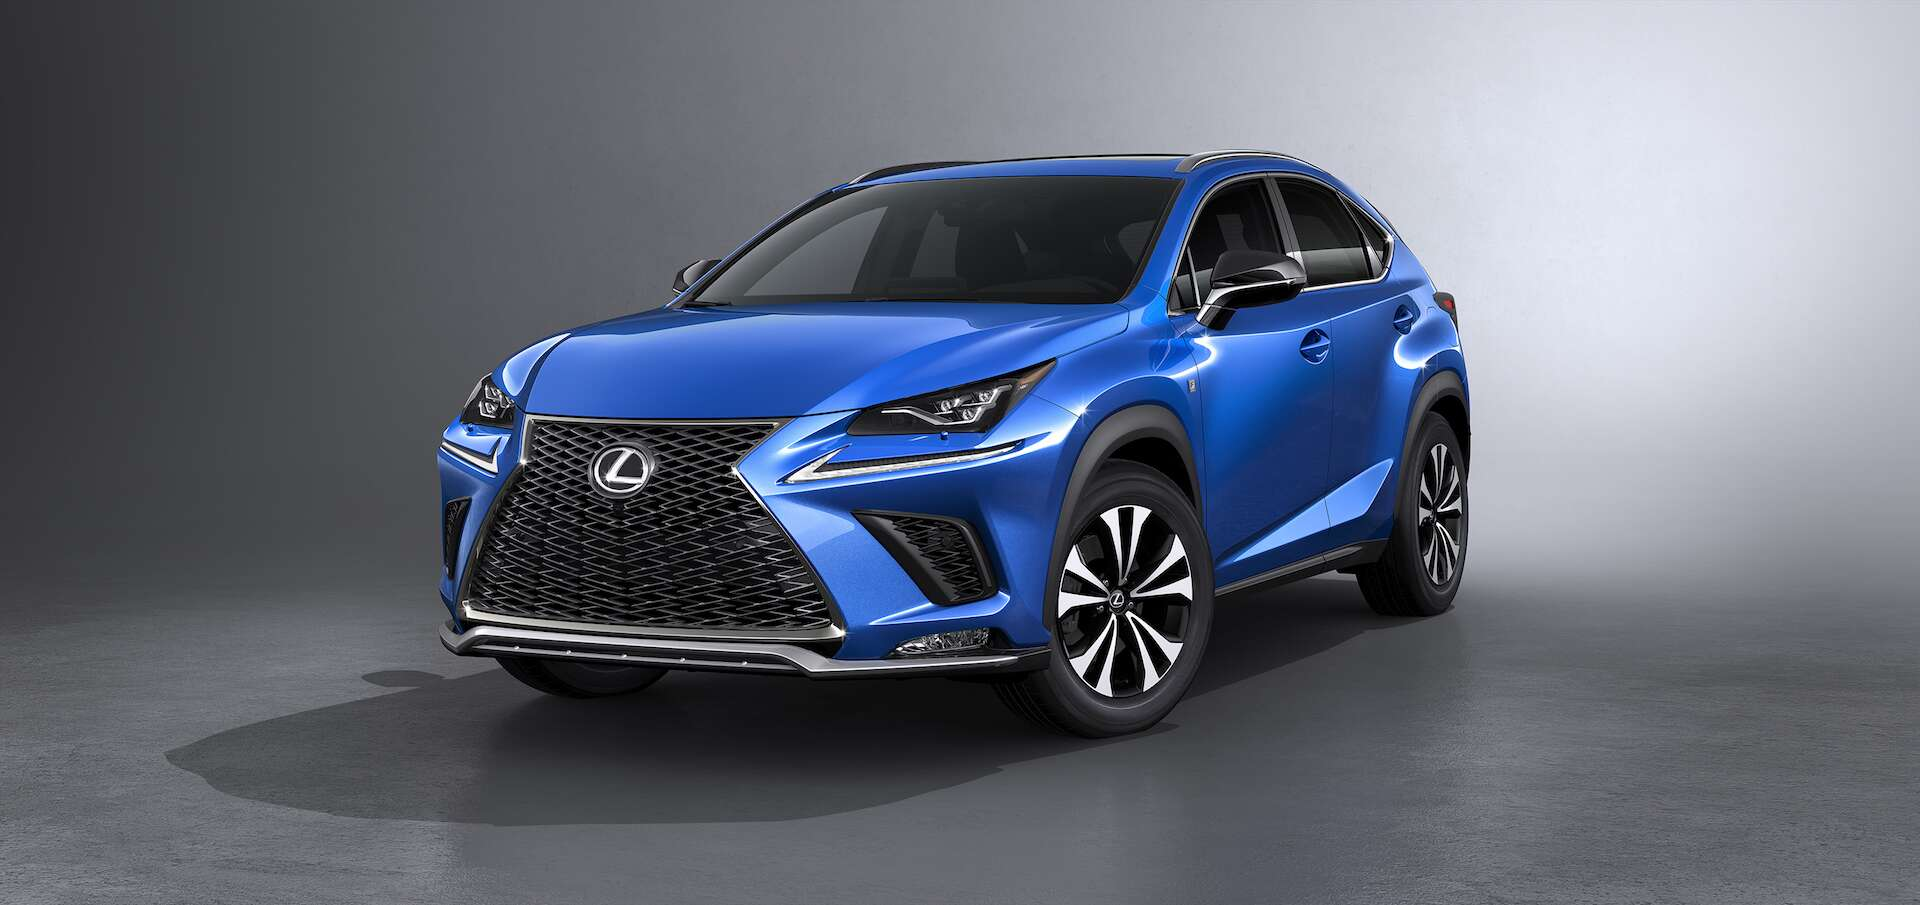 2018 lexus nx300 f sport review quietly sneaking up the compact crossover sales charts the drive. Black Bedroom Furniture Sets. Home Design Ideas